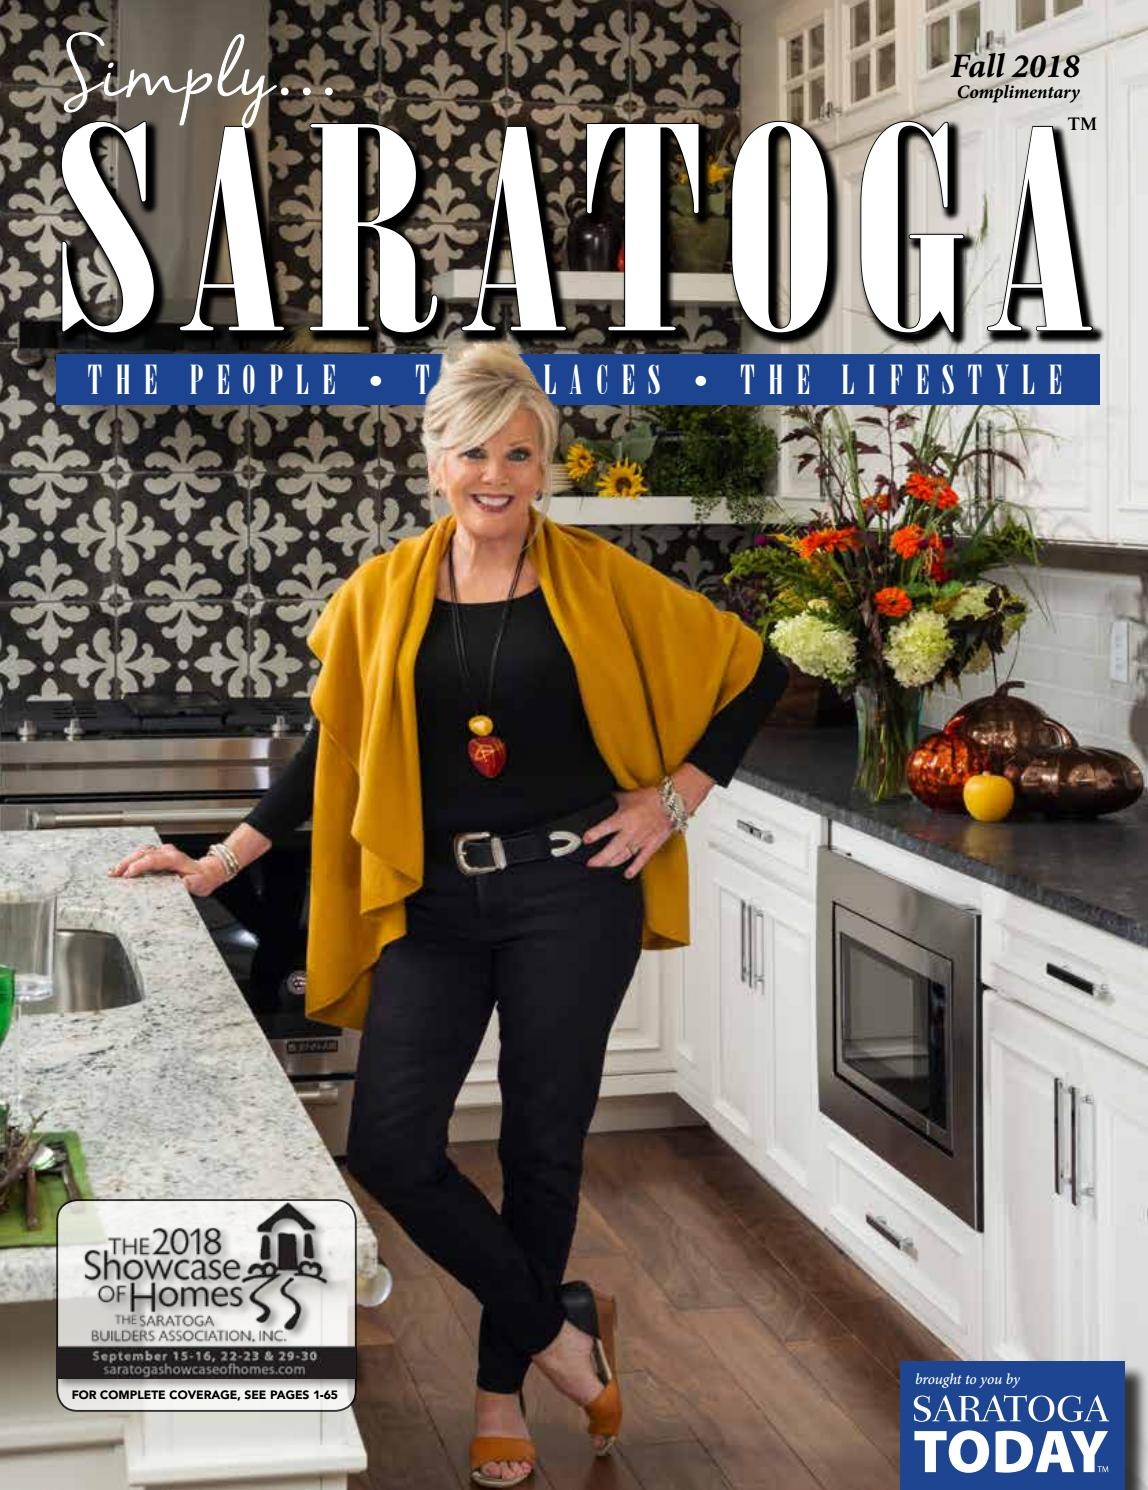 25c2448f0 Simply SARATOGA - Showcase of Homes Fall Edition 2018 by Saratoga TODAY -  issuu